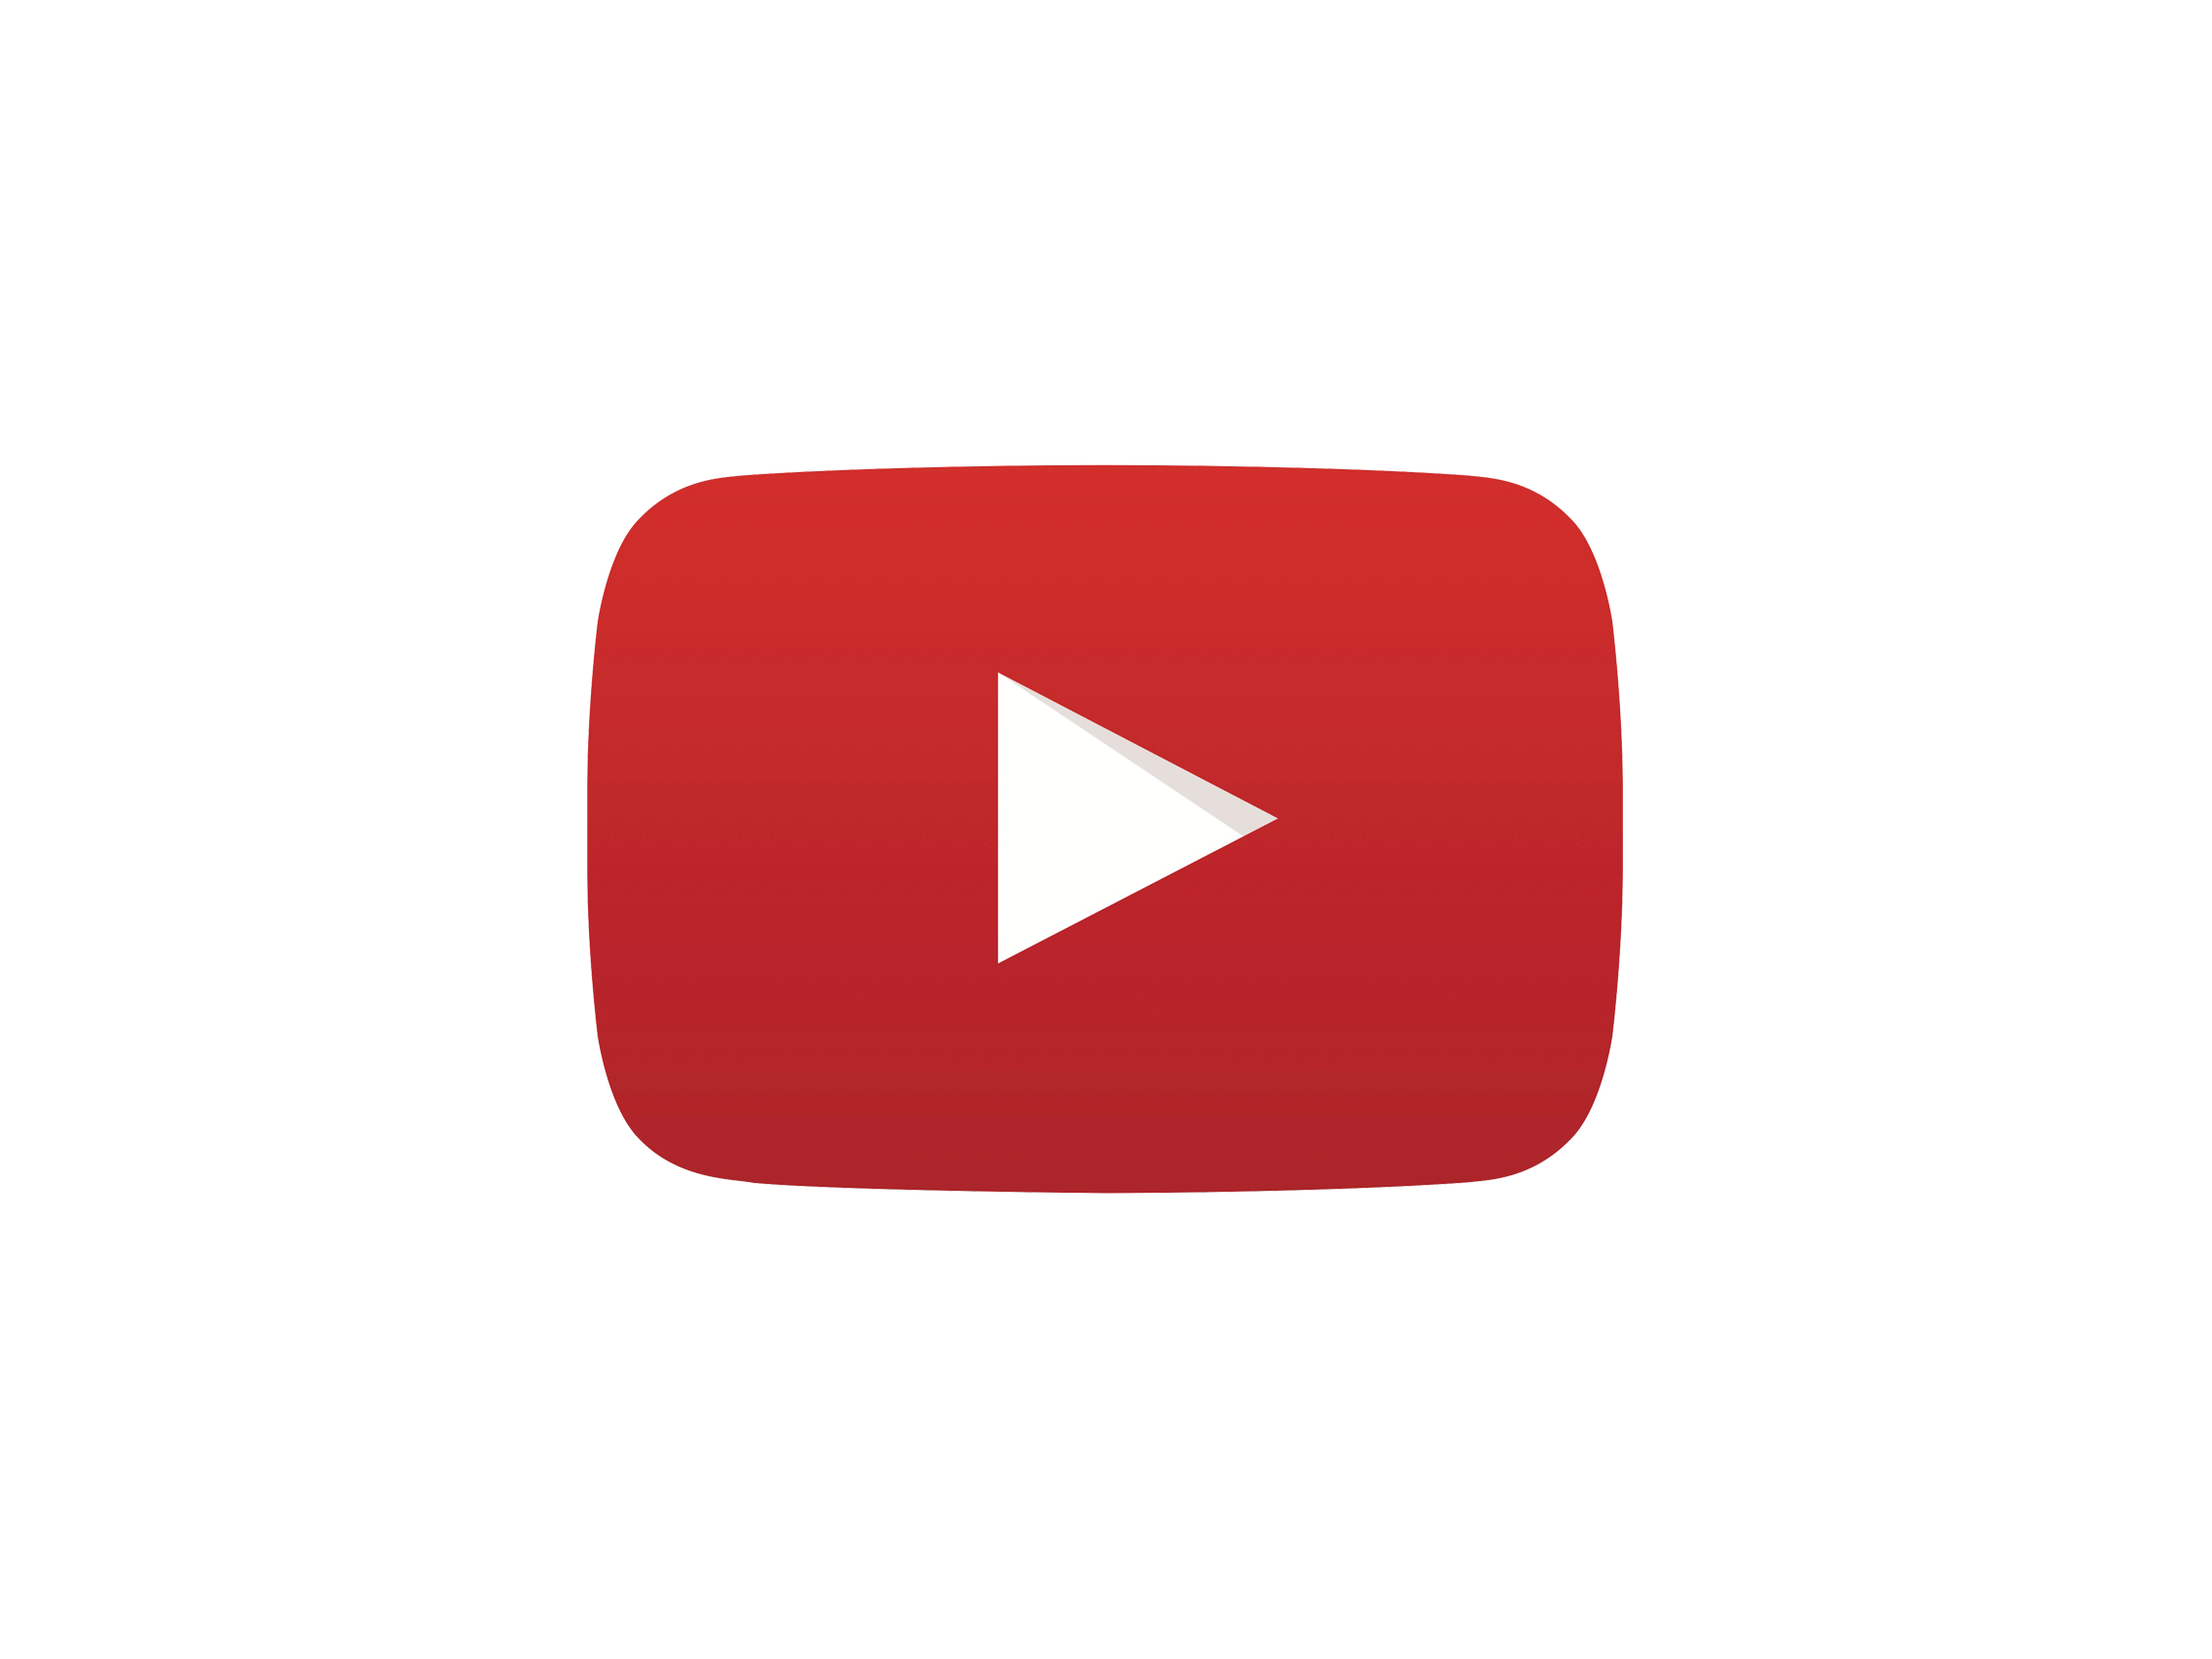 youtube-logo-play-icon-png-24